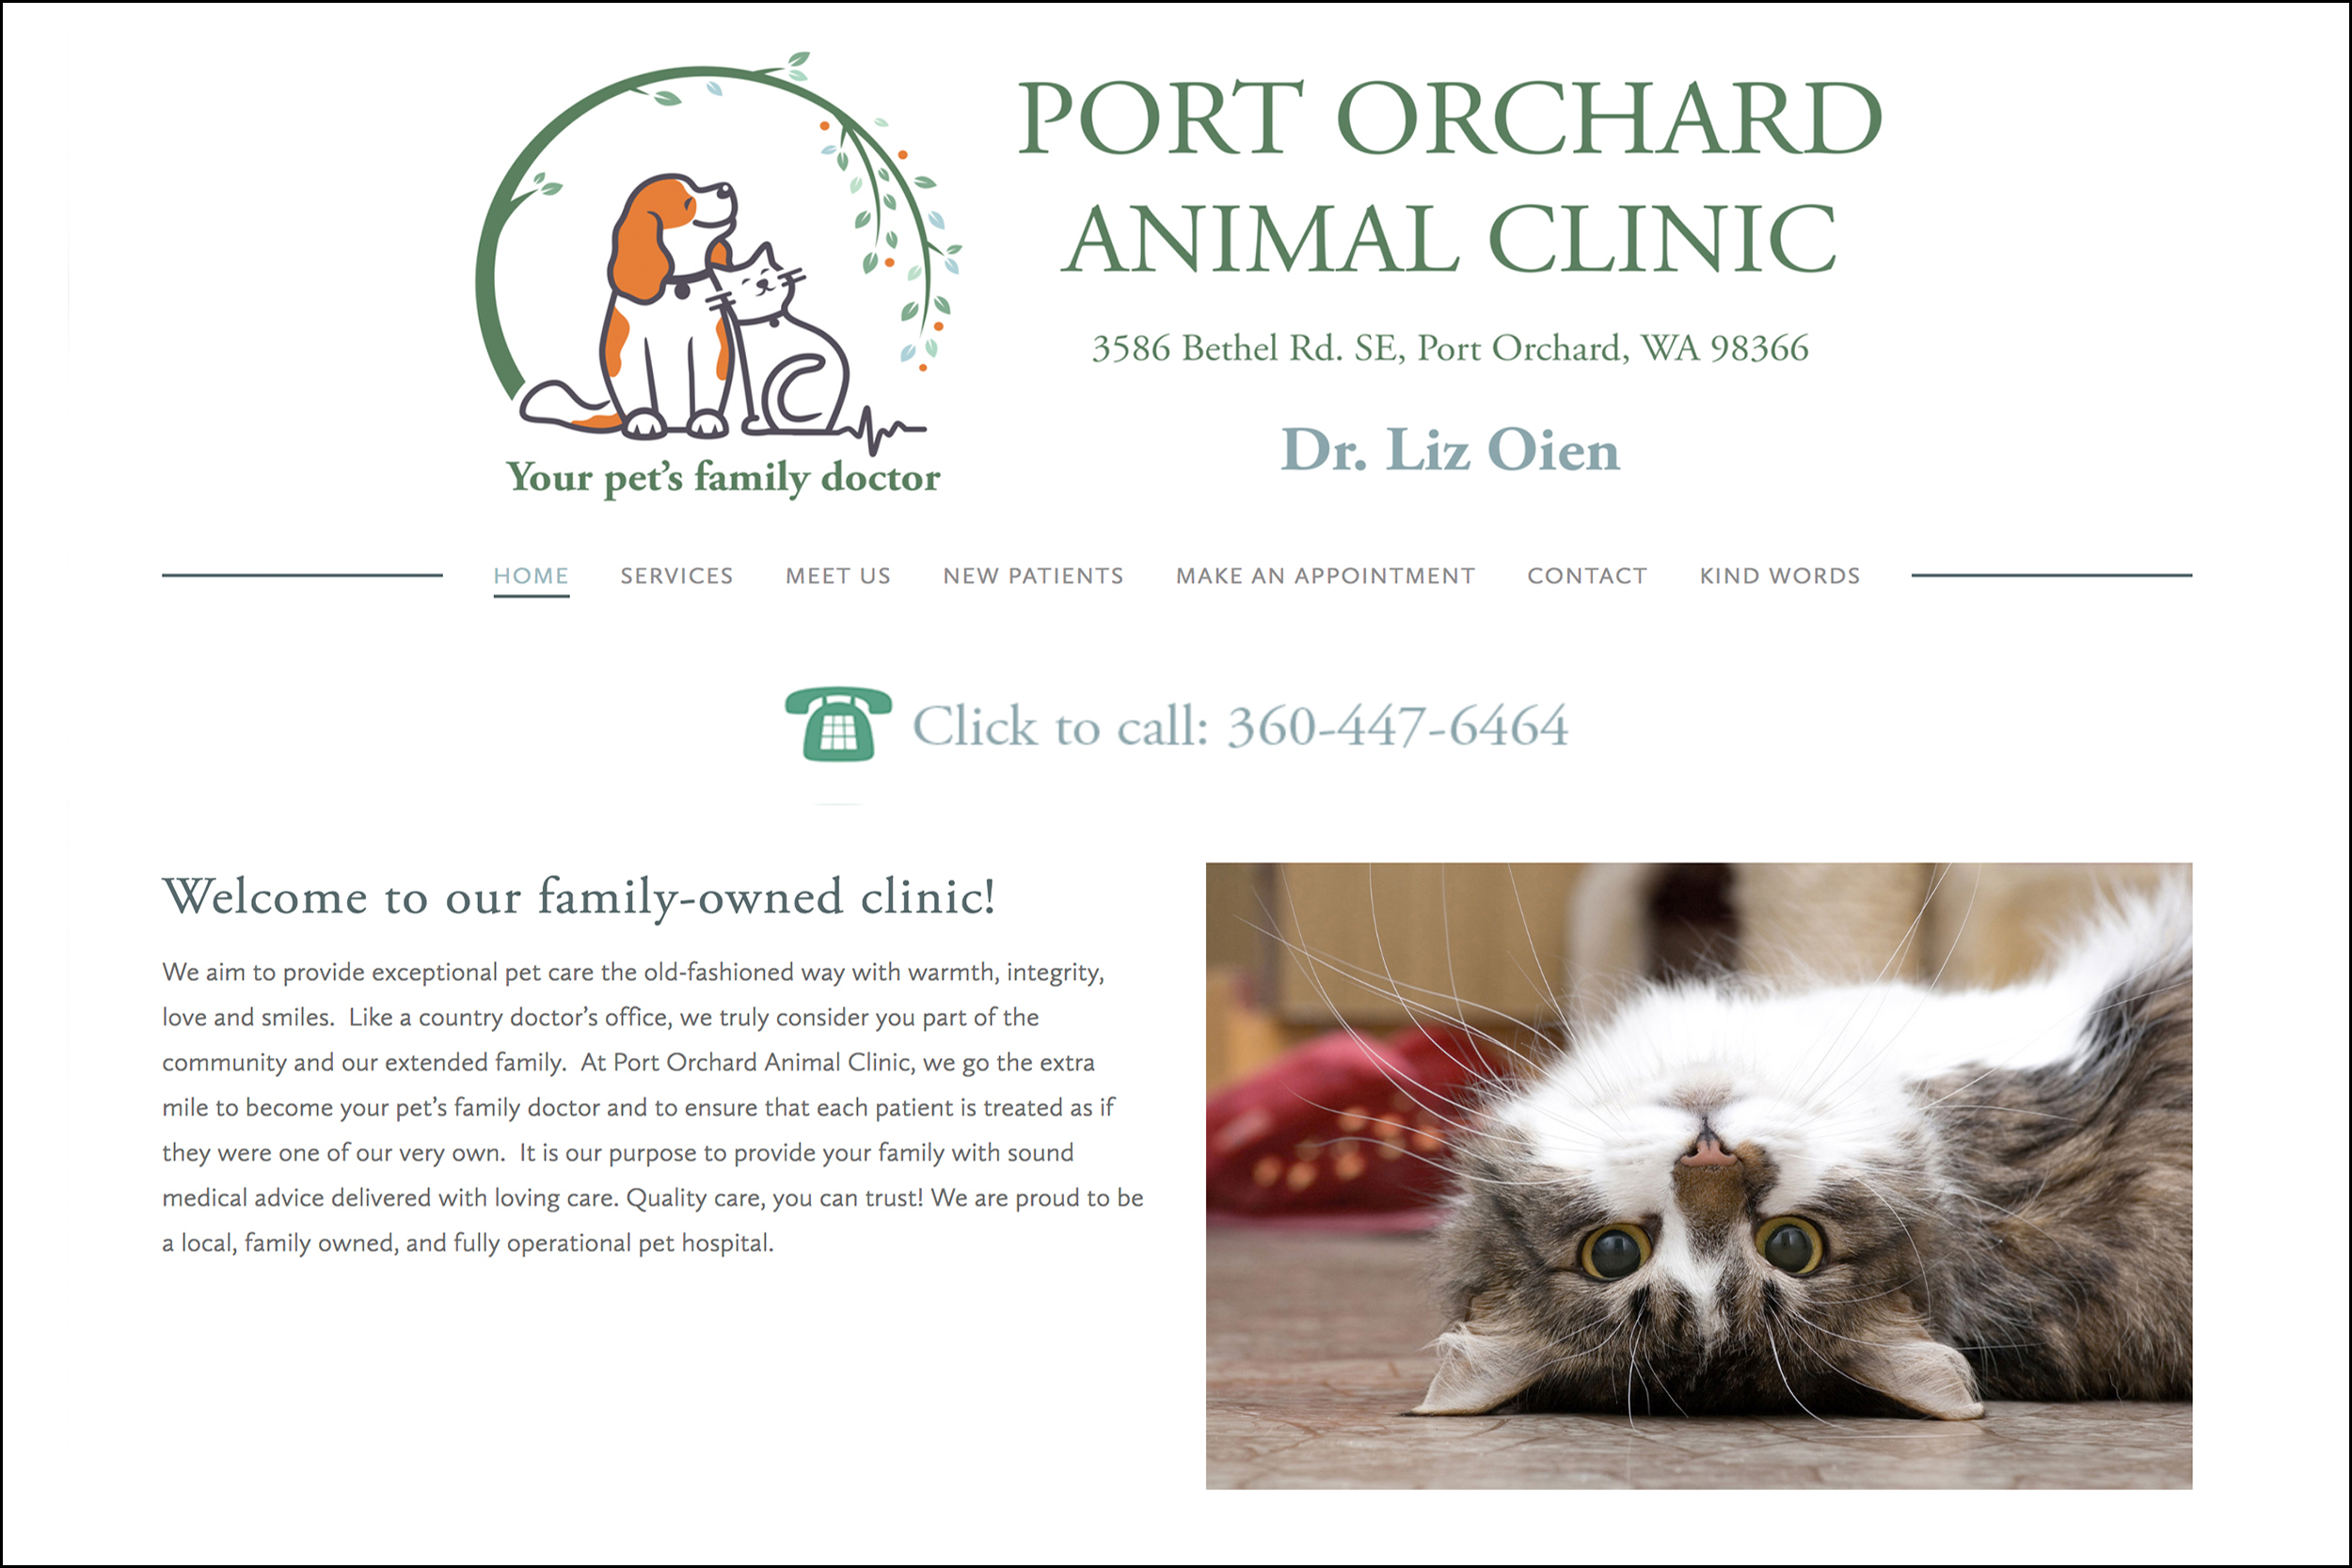 Port Orchard Animal Clinic, Web Design by Laurie Nelson